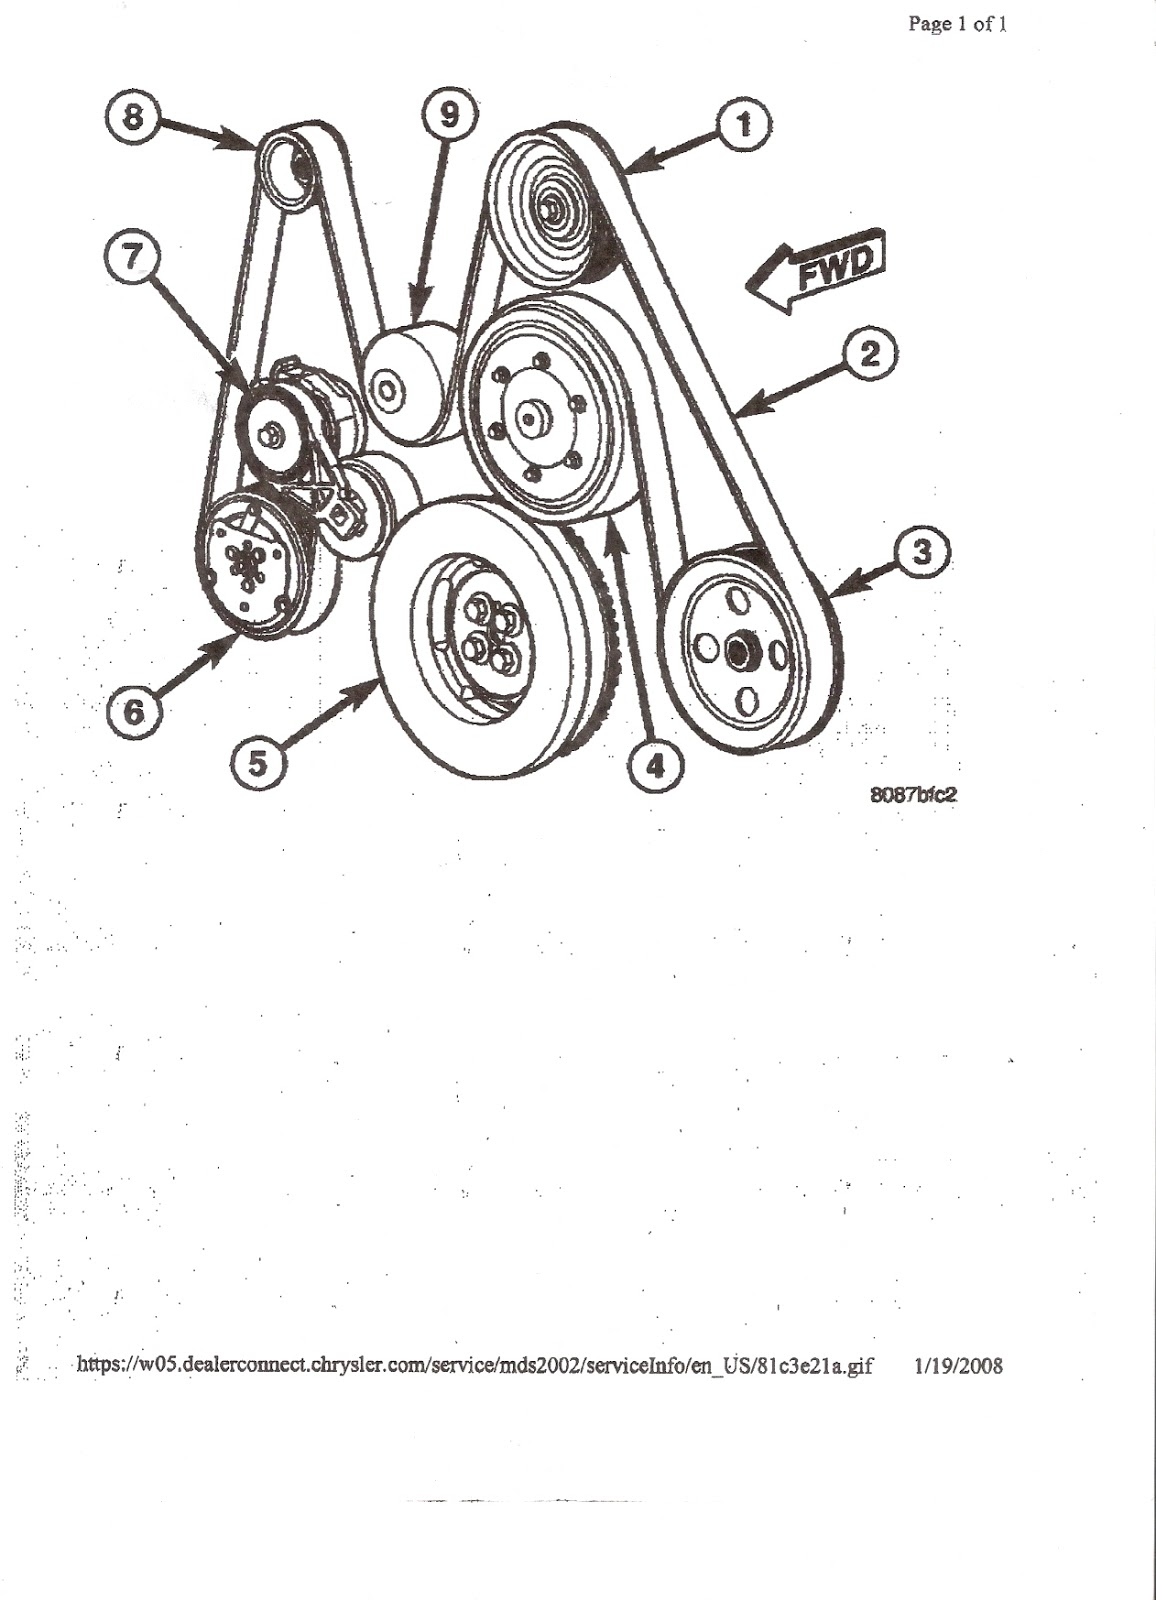 bt_7196] chevy silverado serpentine belt diagram download diagram  ling props chim cular puti onica gue45 sapebe mohammedshrine librar wiring  101